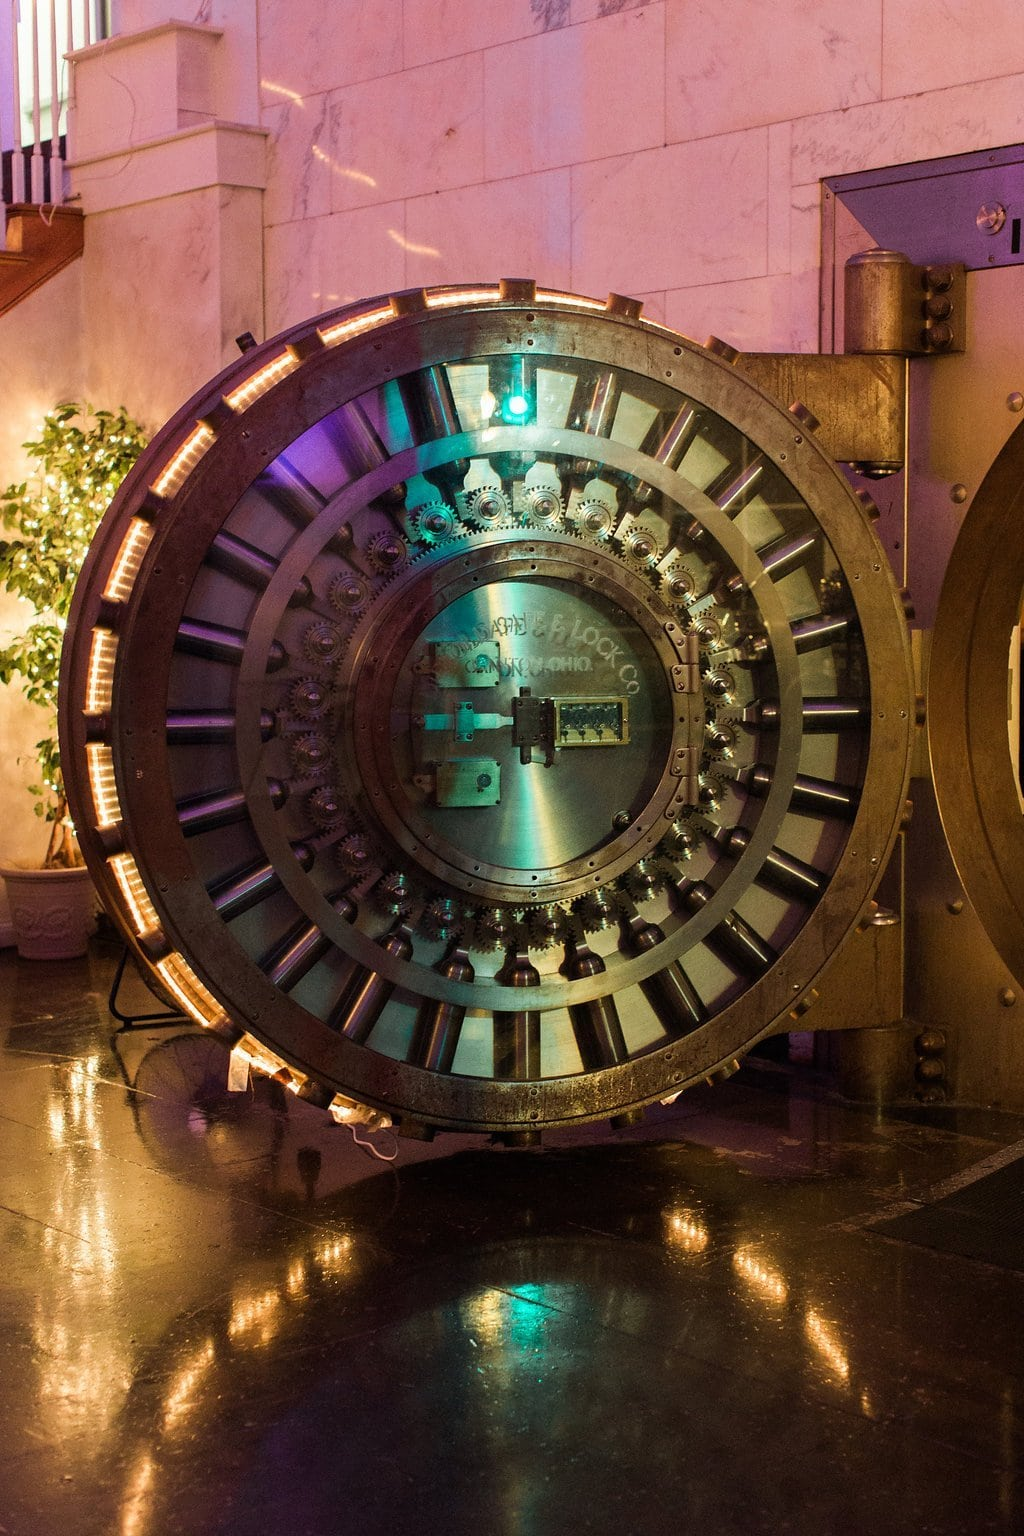 Vault door to the bar area at wedding reception